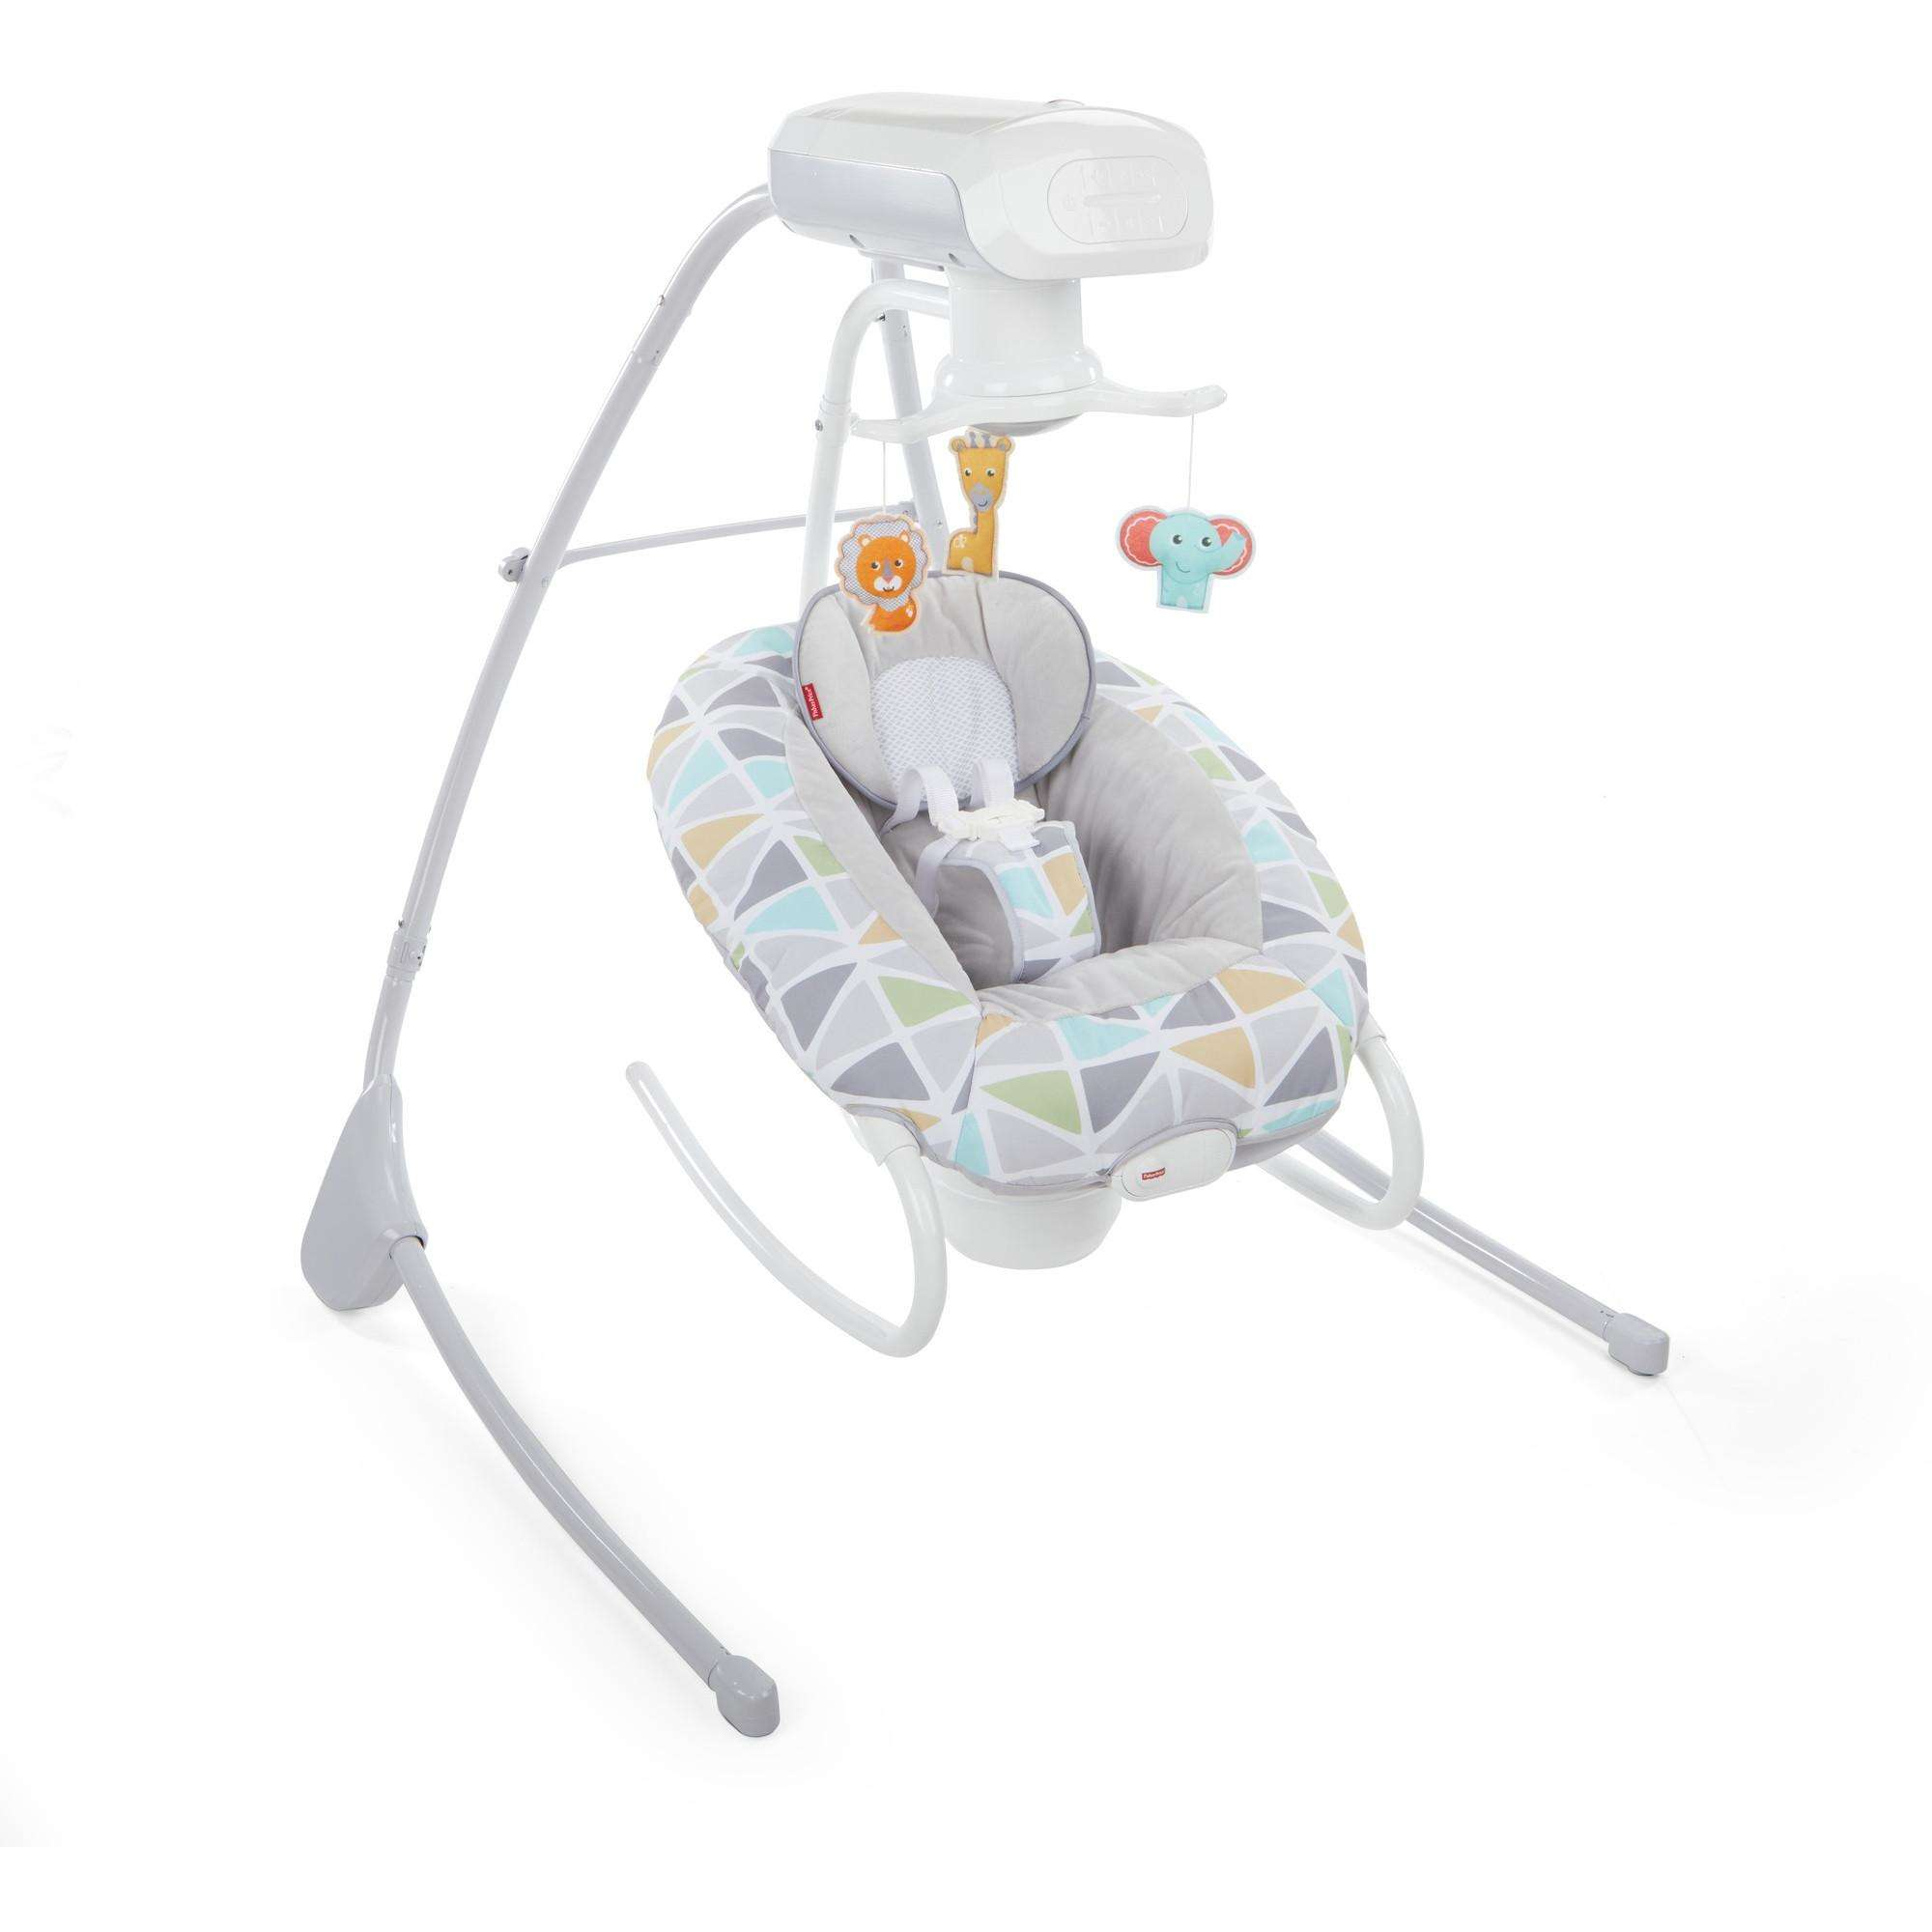 Fisher Price 2-in-1 Deluxe Cradle 'n Swing with 6-Speeds by Fisher-Price